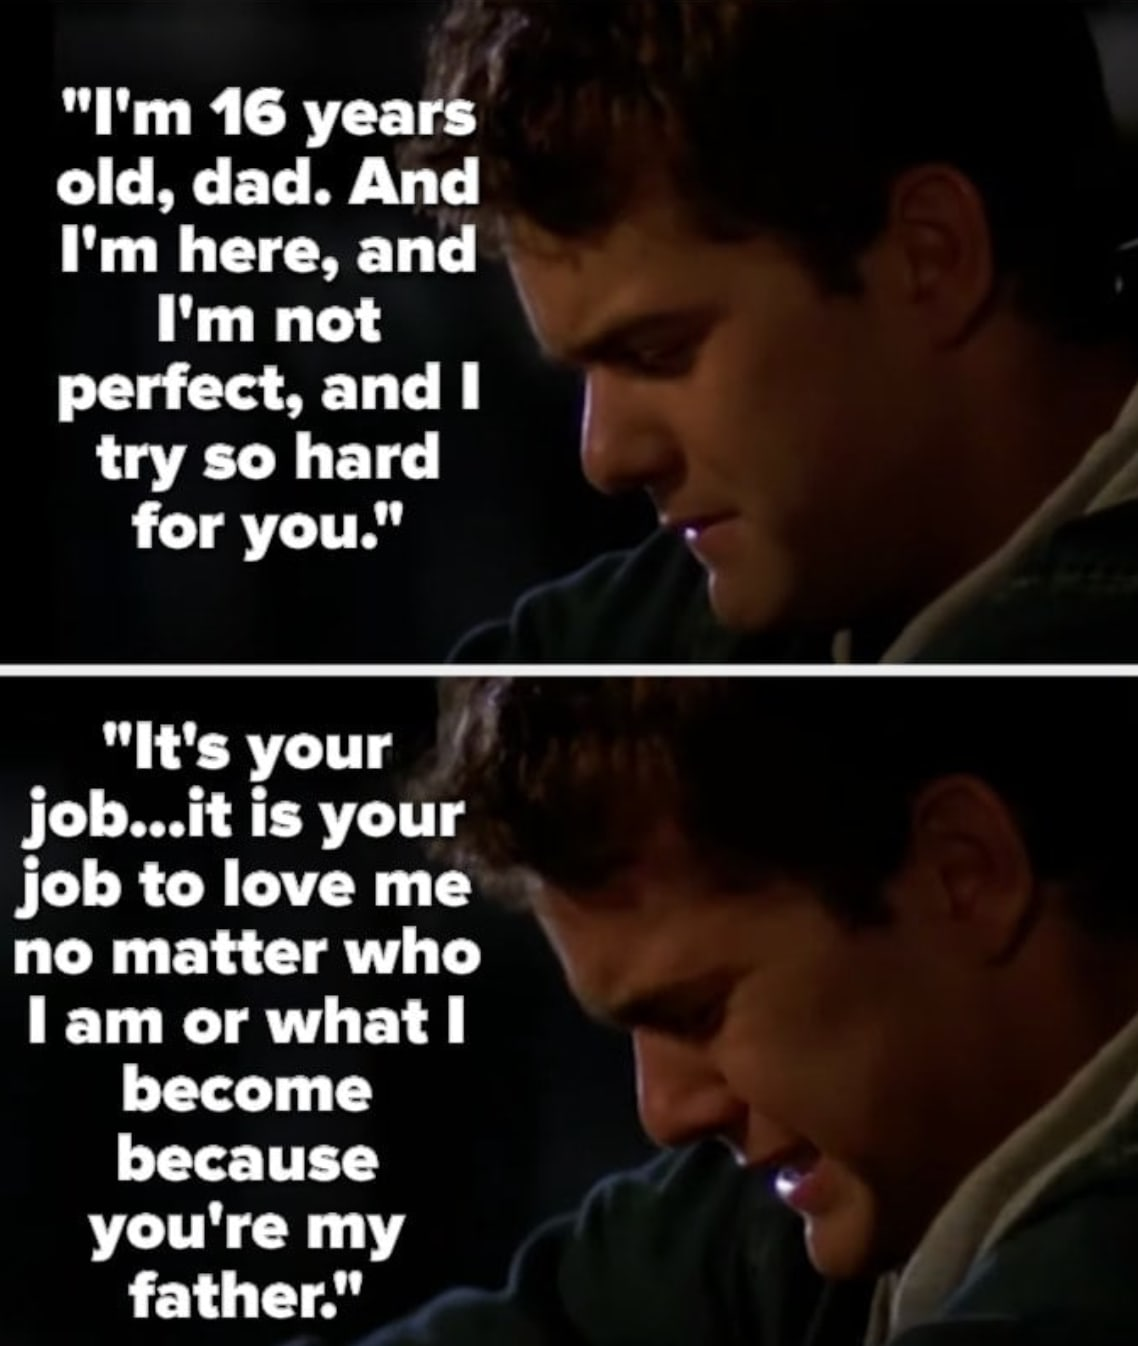 Dawson asks when his dad gave up on him, saying he's only 16 and tries so hard and his dad is supposed to love him